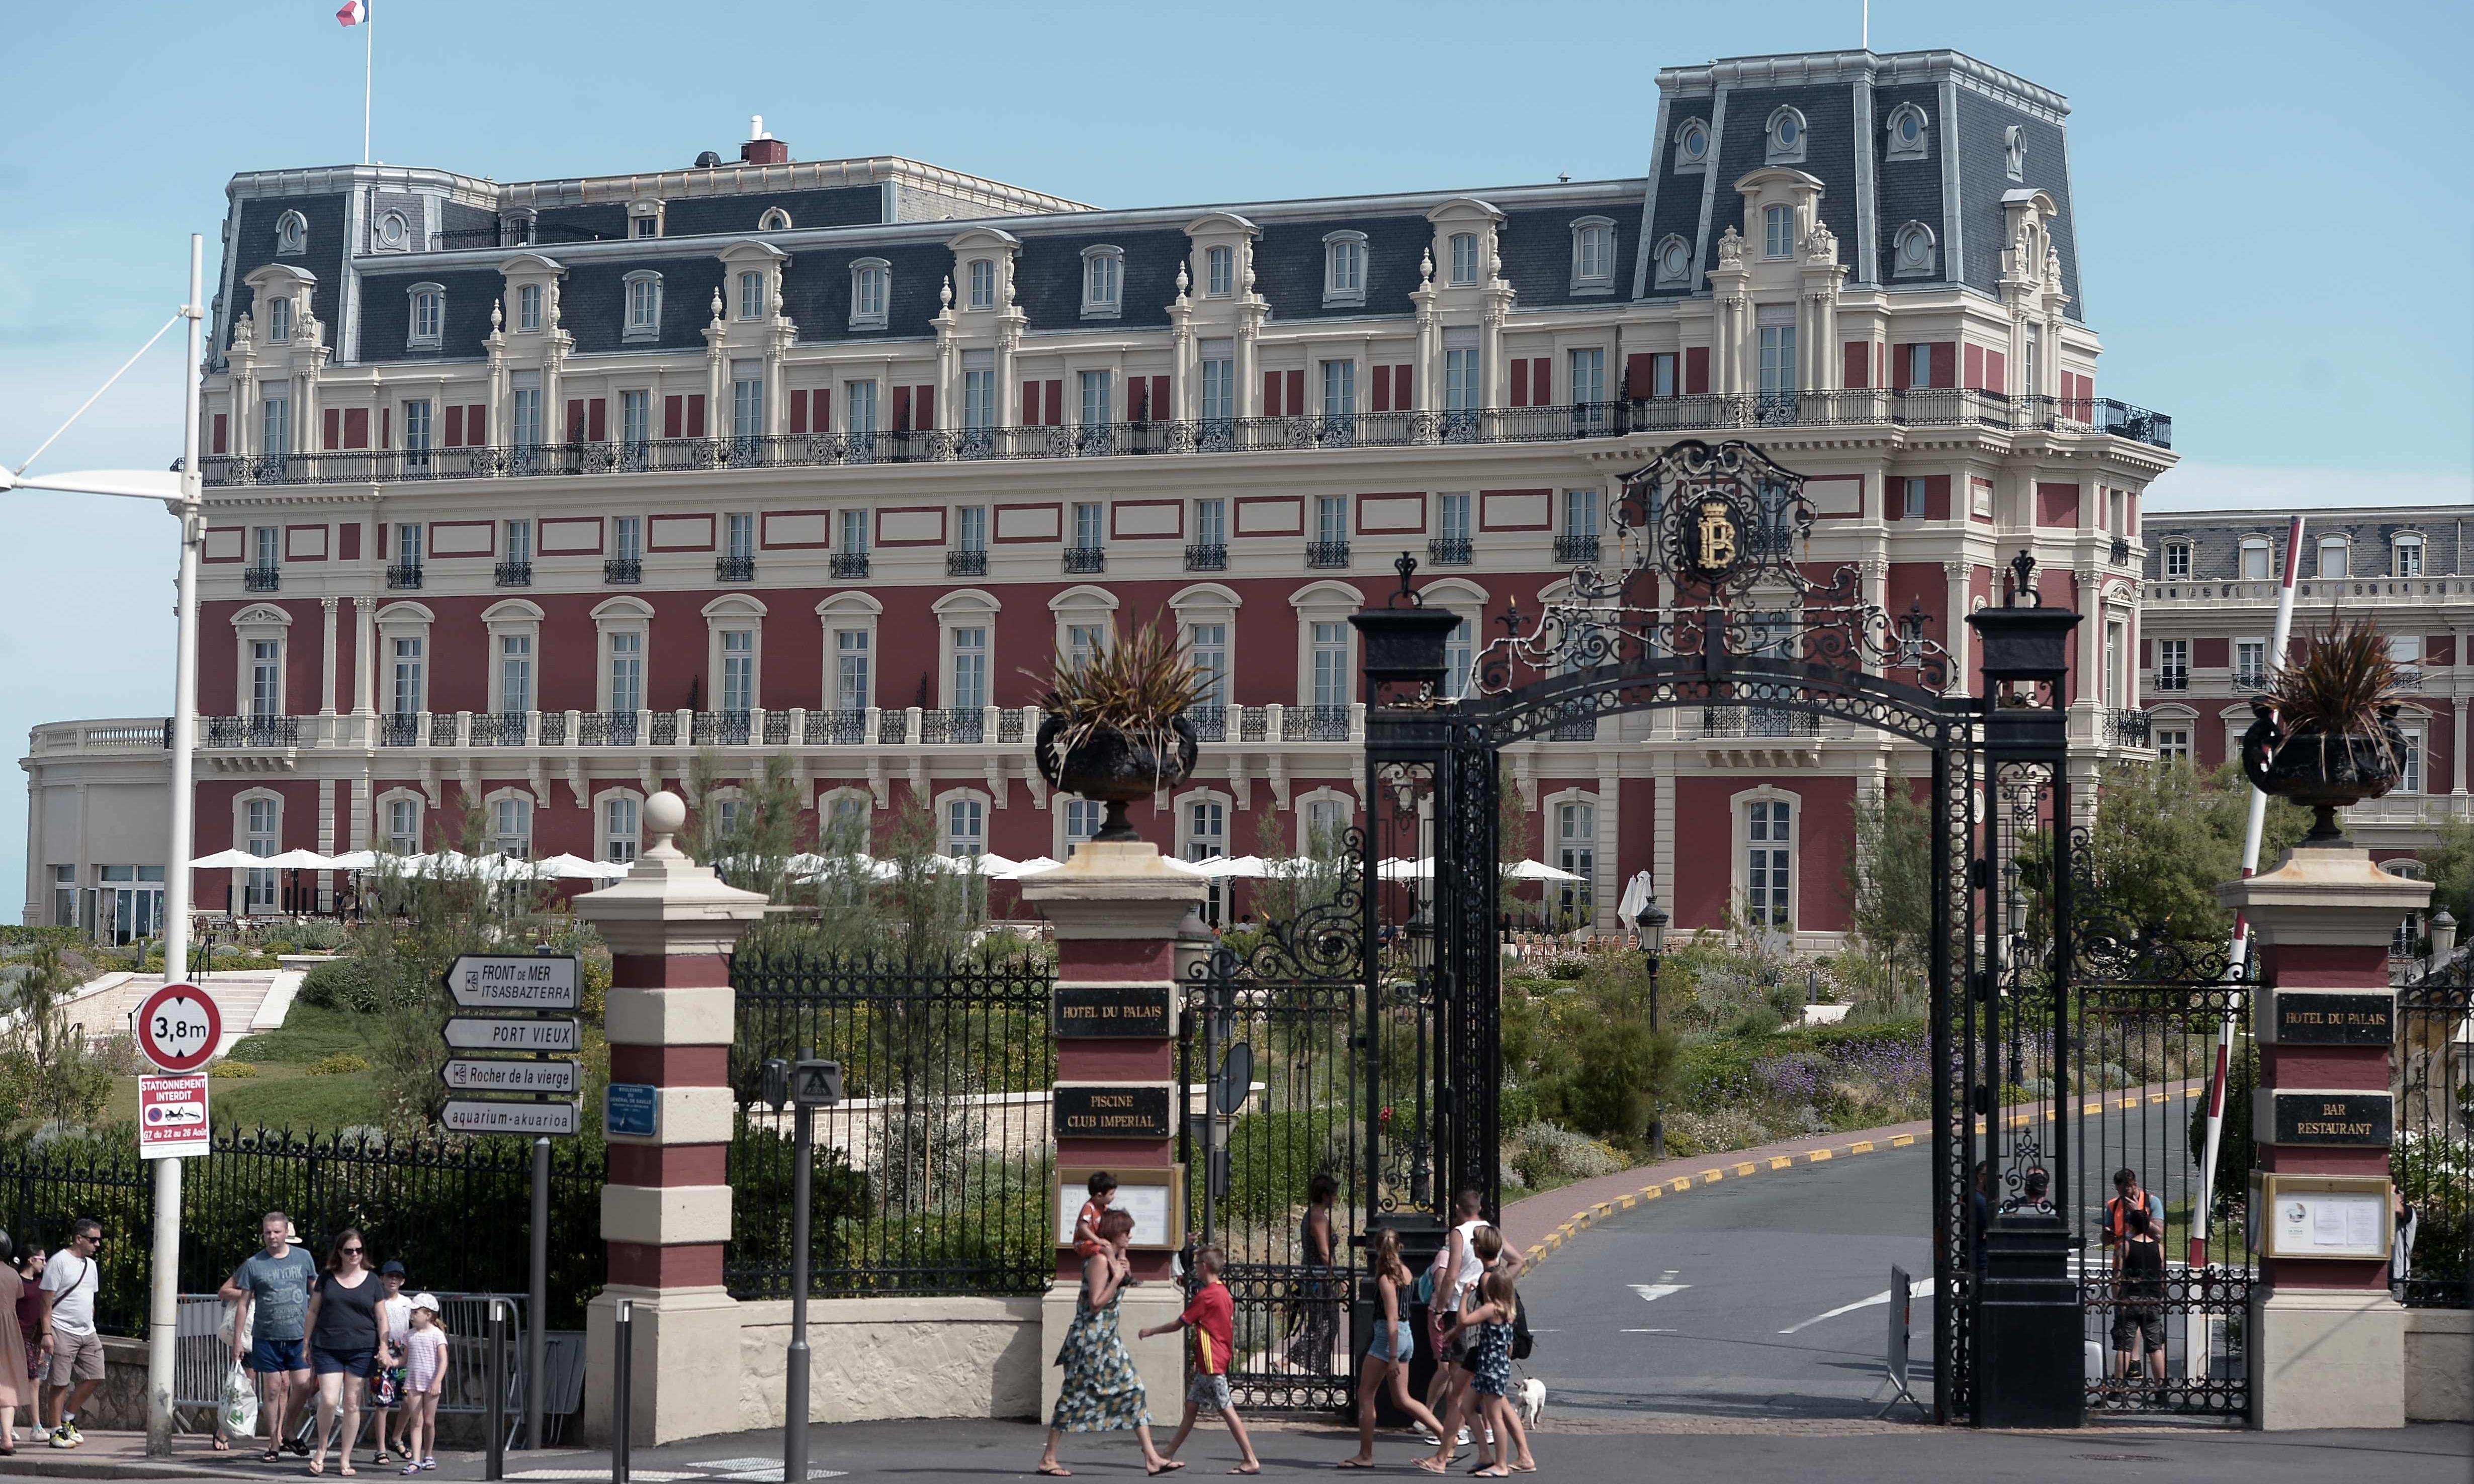 How luxury hotels such as Biarritz's Hôtel du Palais have helped shape history